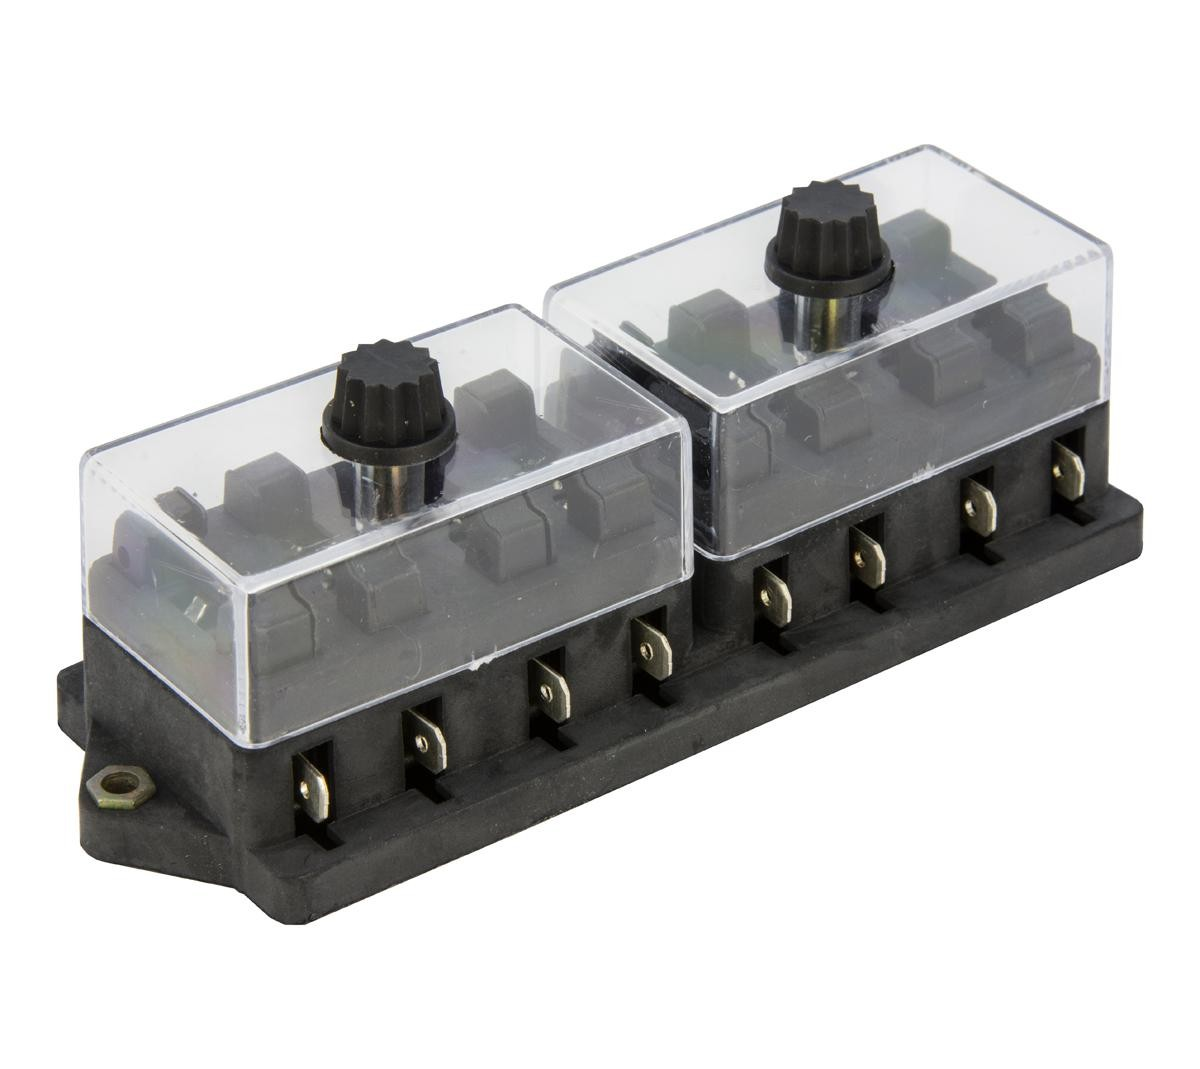 Fuse Boxes Electrical Universal Motorsport Parts Mazda Mx5 Na Box Quick View